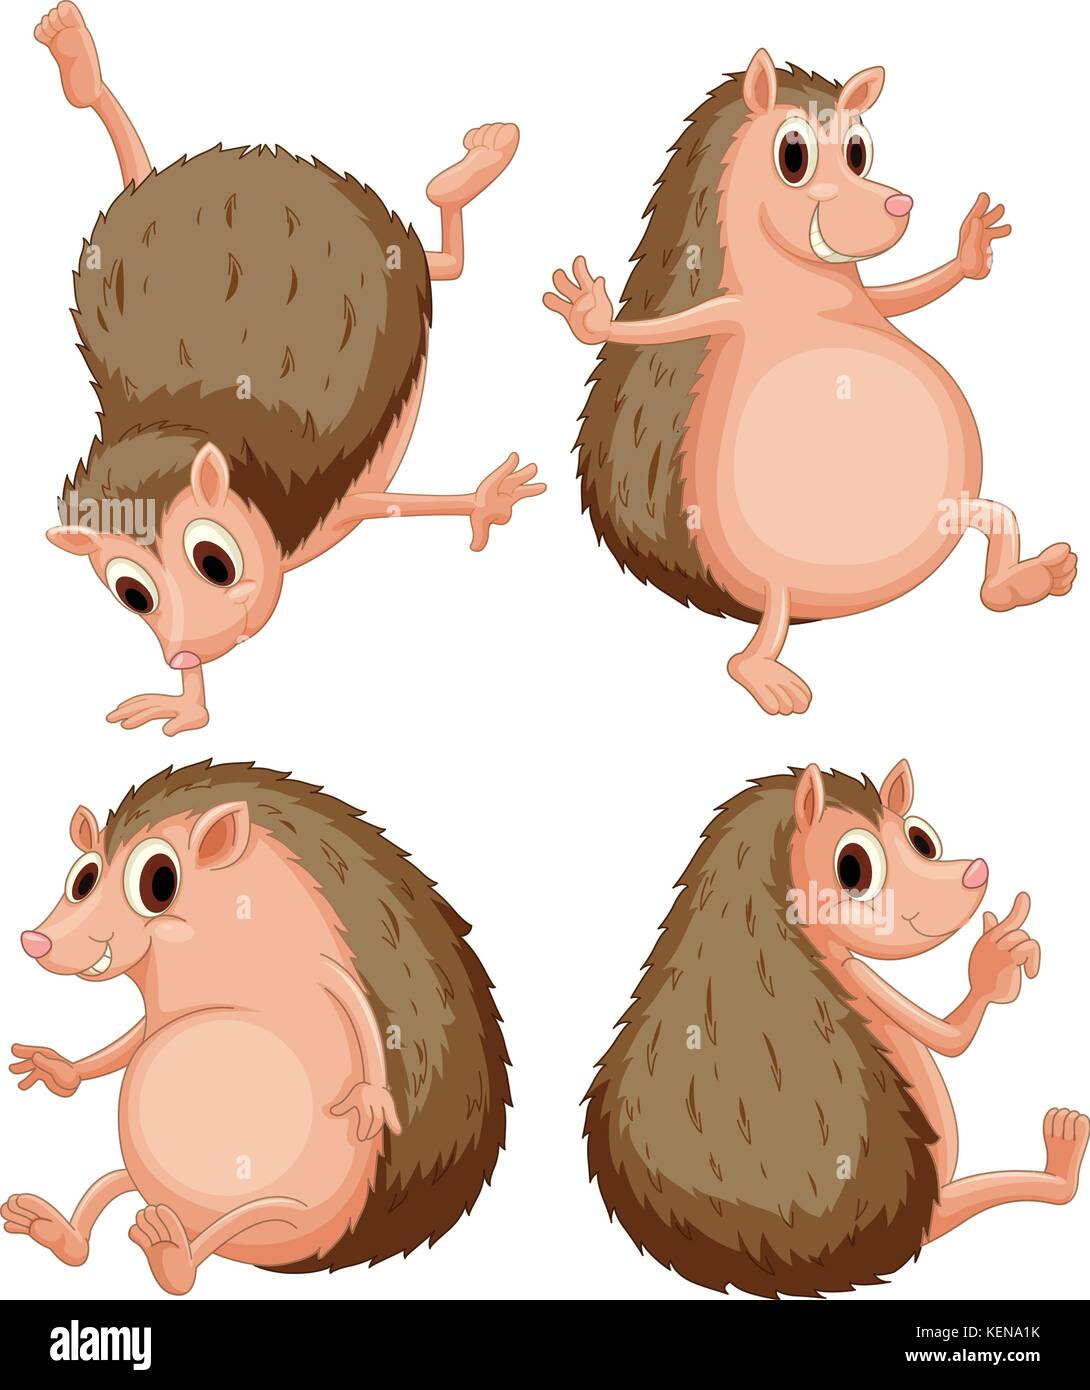 Illustration of a set of hedgehog - Stock Image